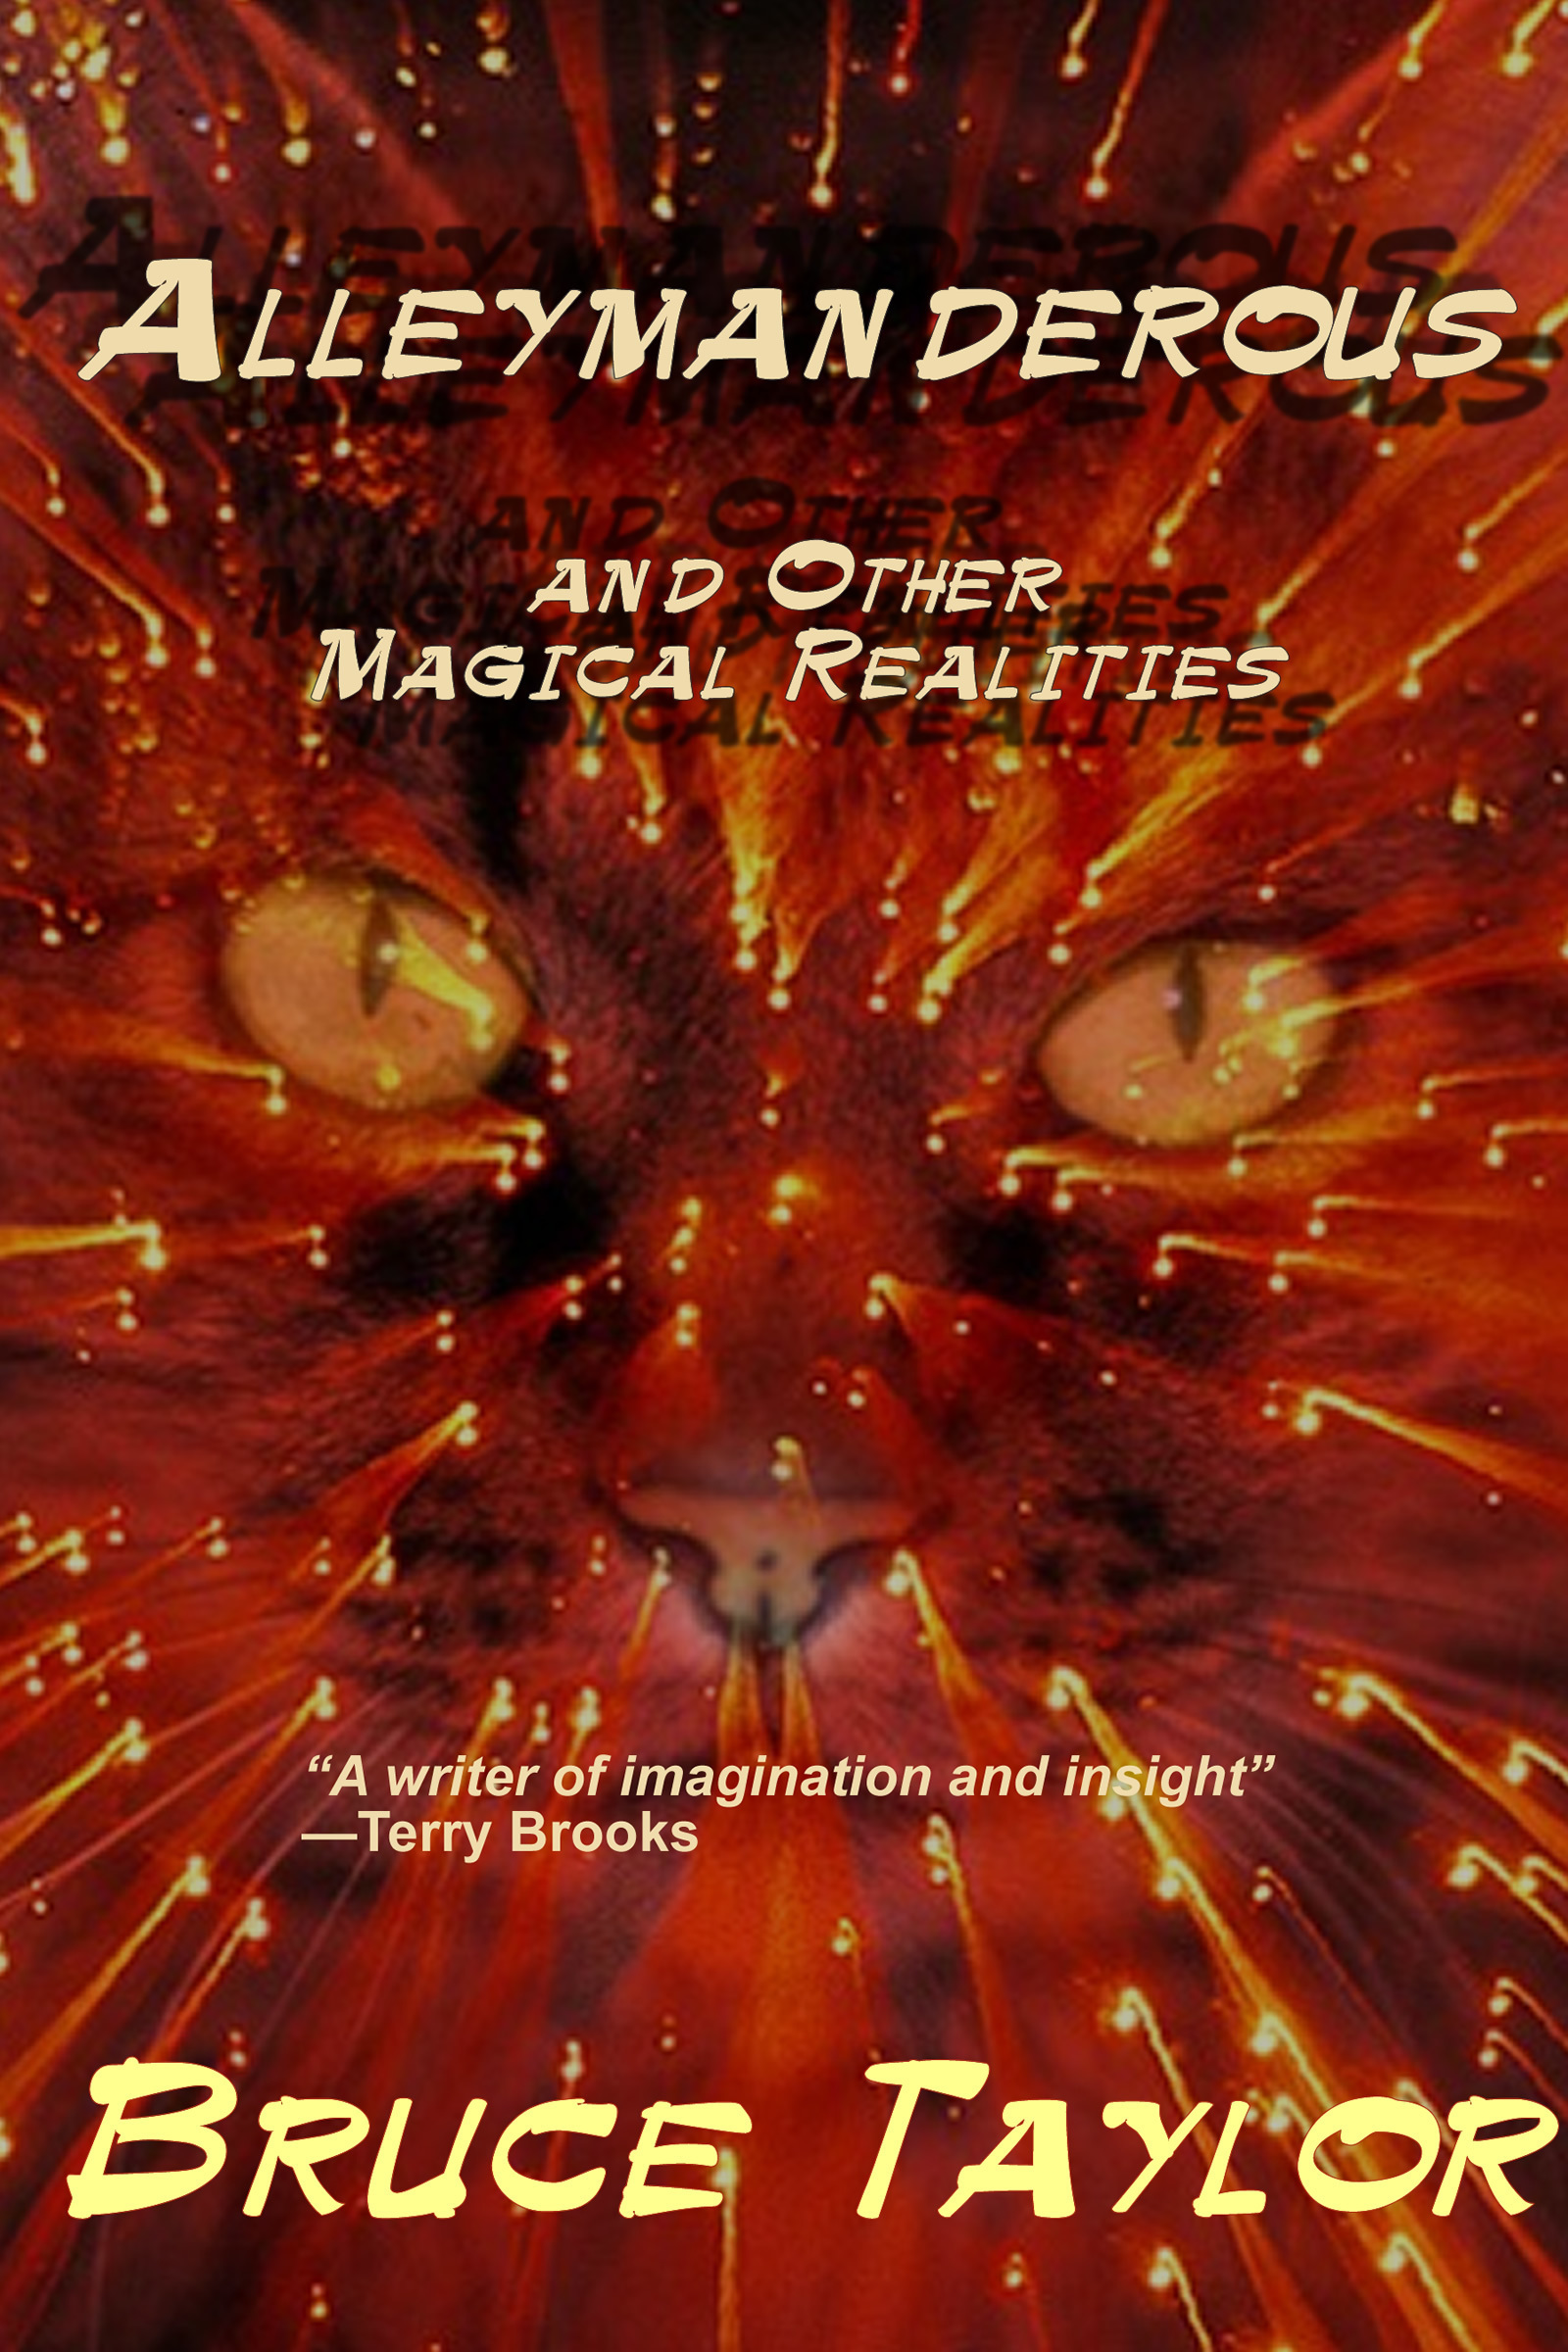 Alleymanderous and Other Magical Realities